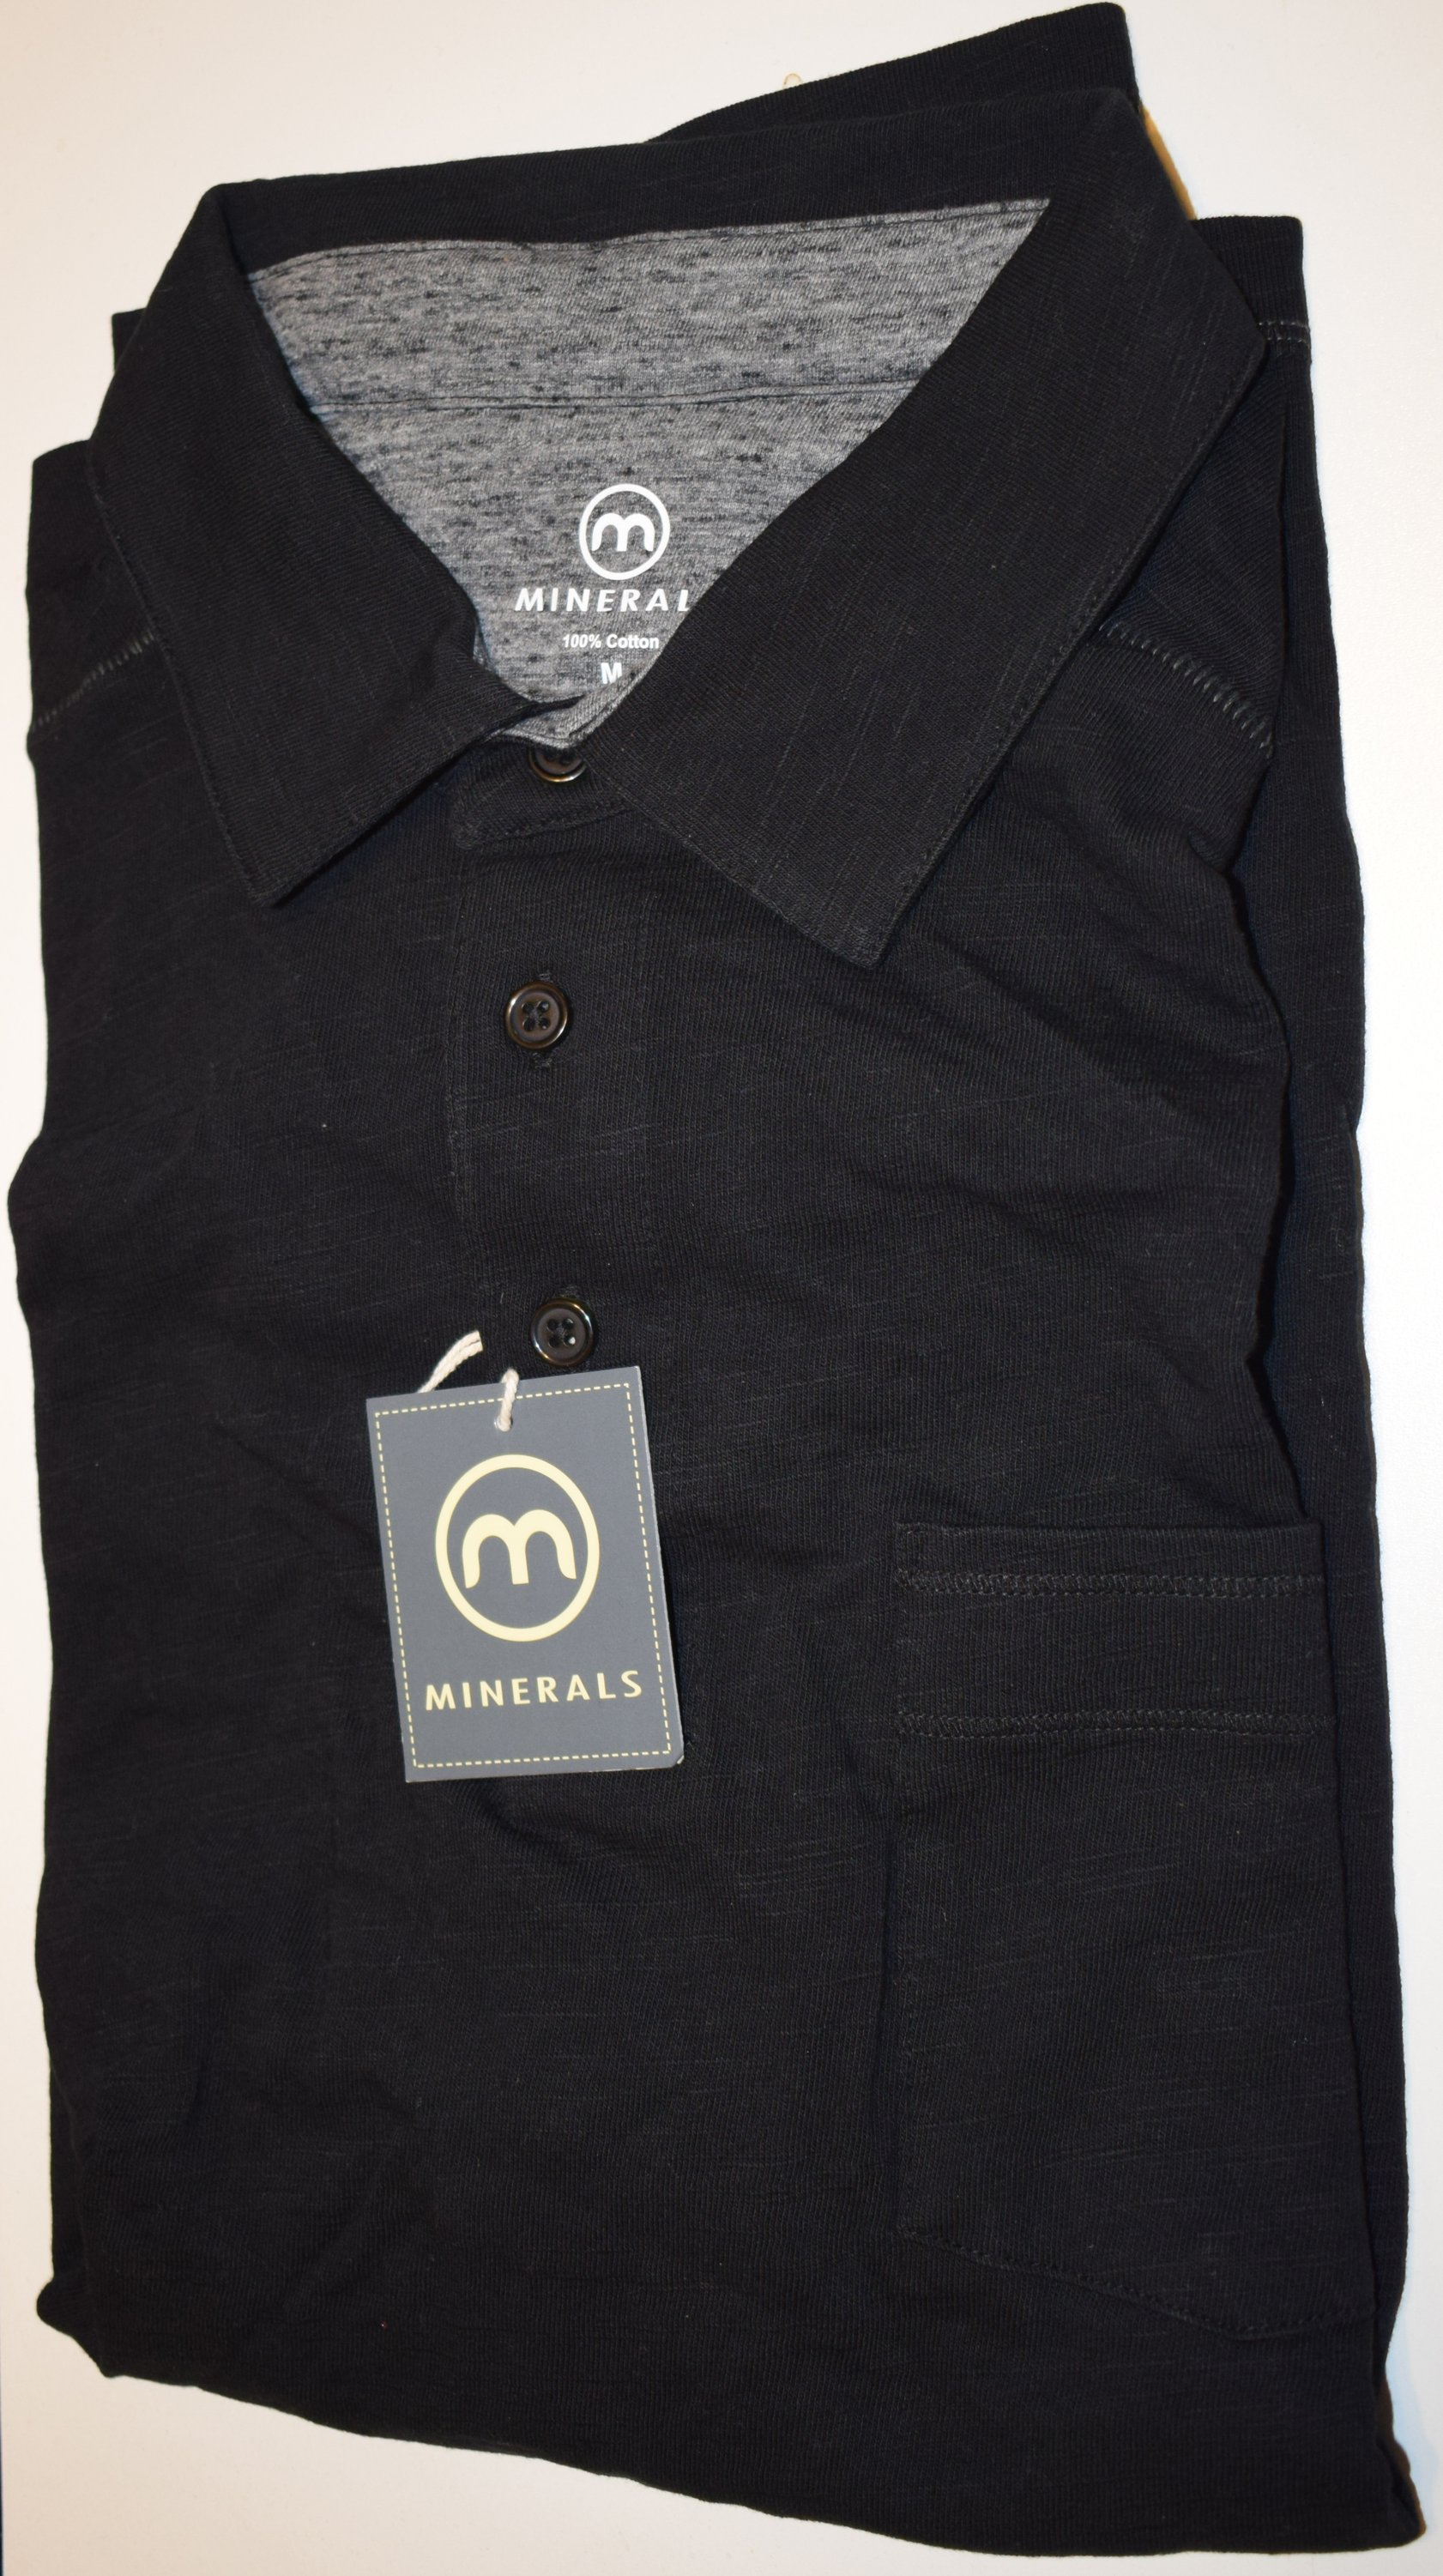 MINERALS Mens Clothing Cotton Polo Shirt